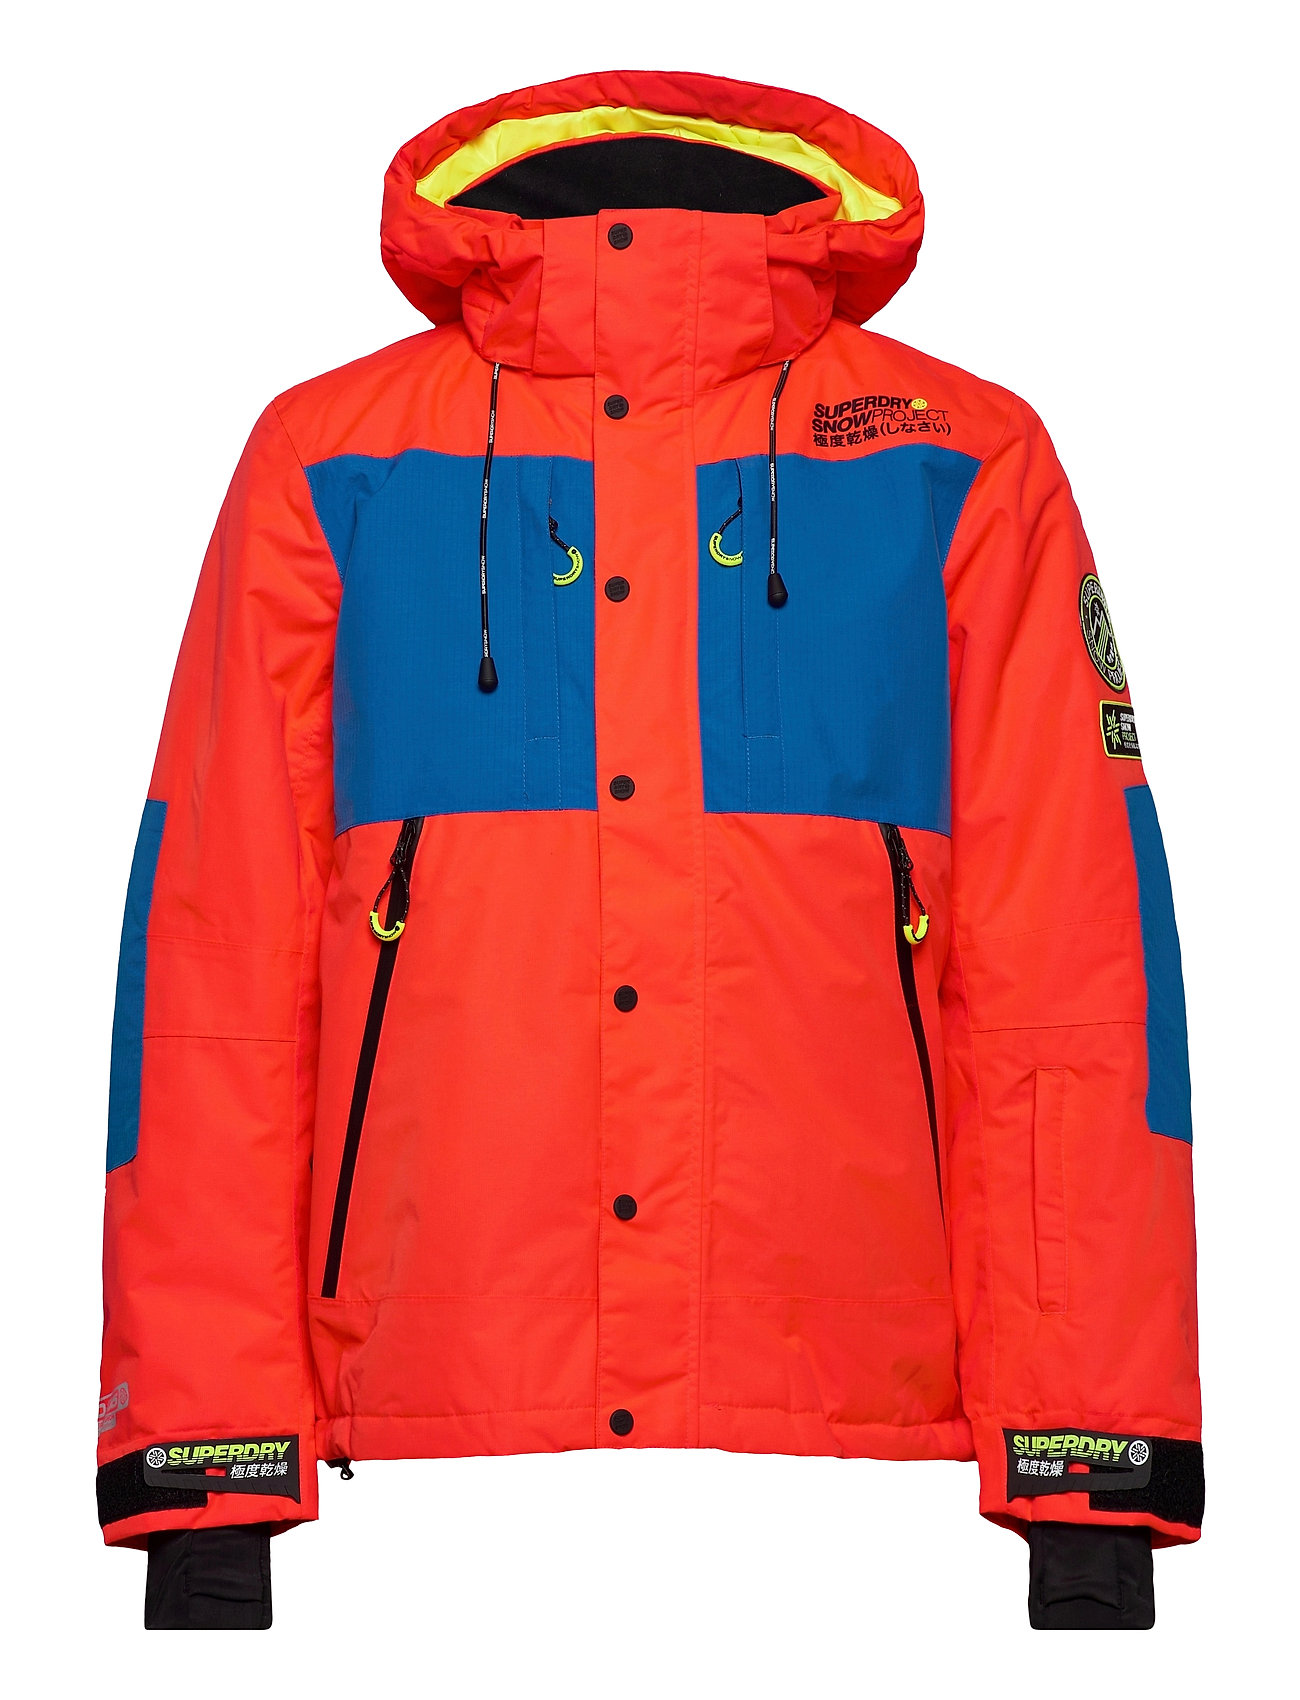 SUPERDRY Sportoberteile | Sd Mountain Jacket Outerwear Sport Jackets Bunt/gemustert SUPERDRY